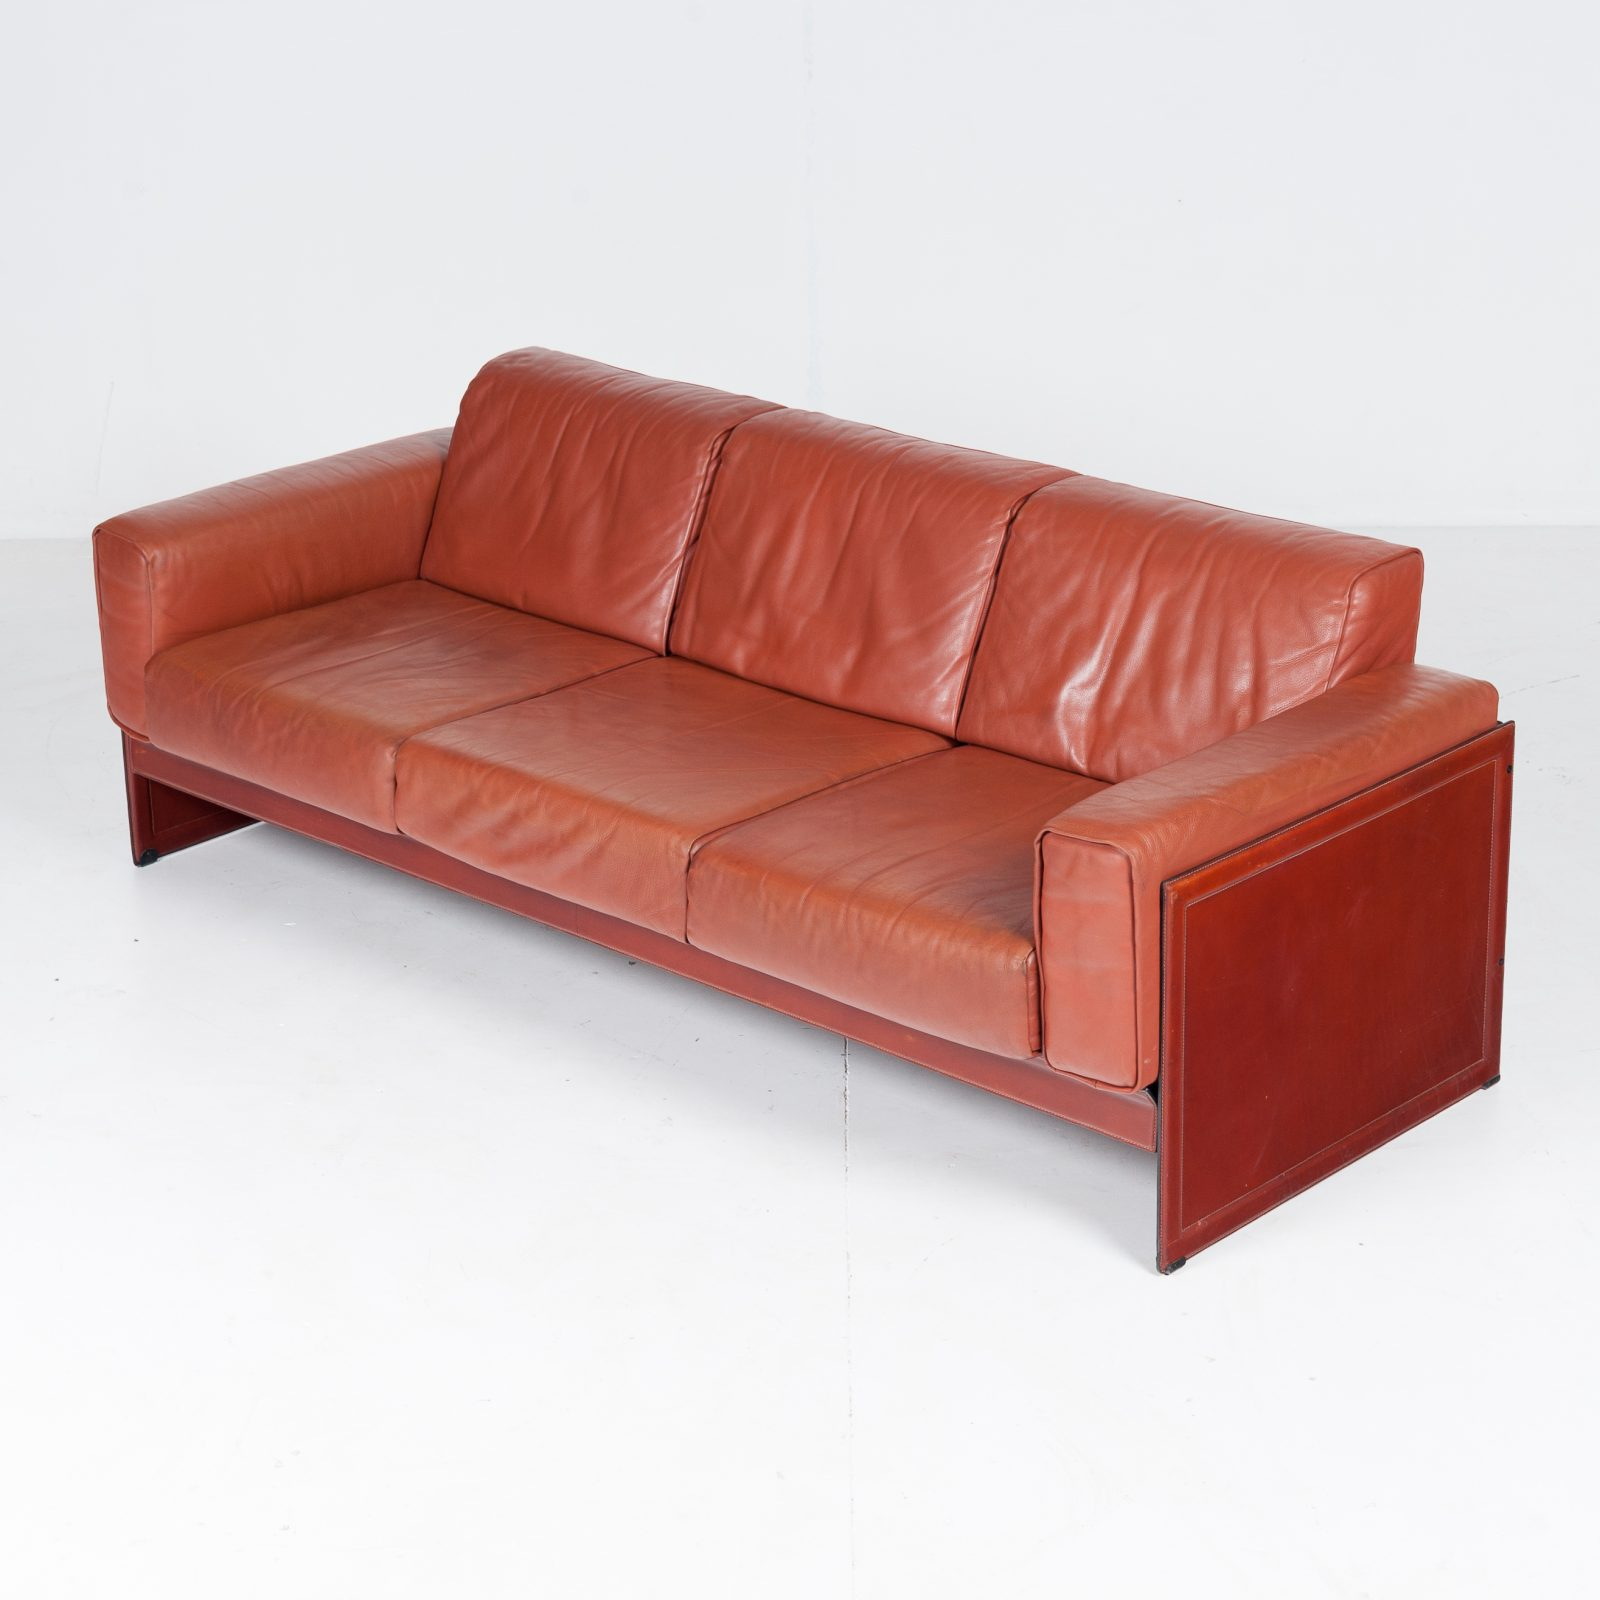 3 Seat Sofa In Leather By Matteo Grassi, 1980s, Italy51